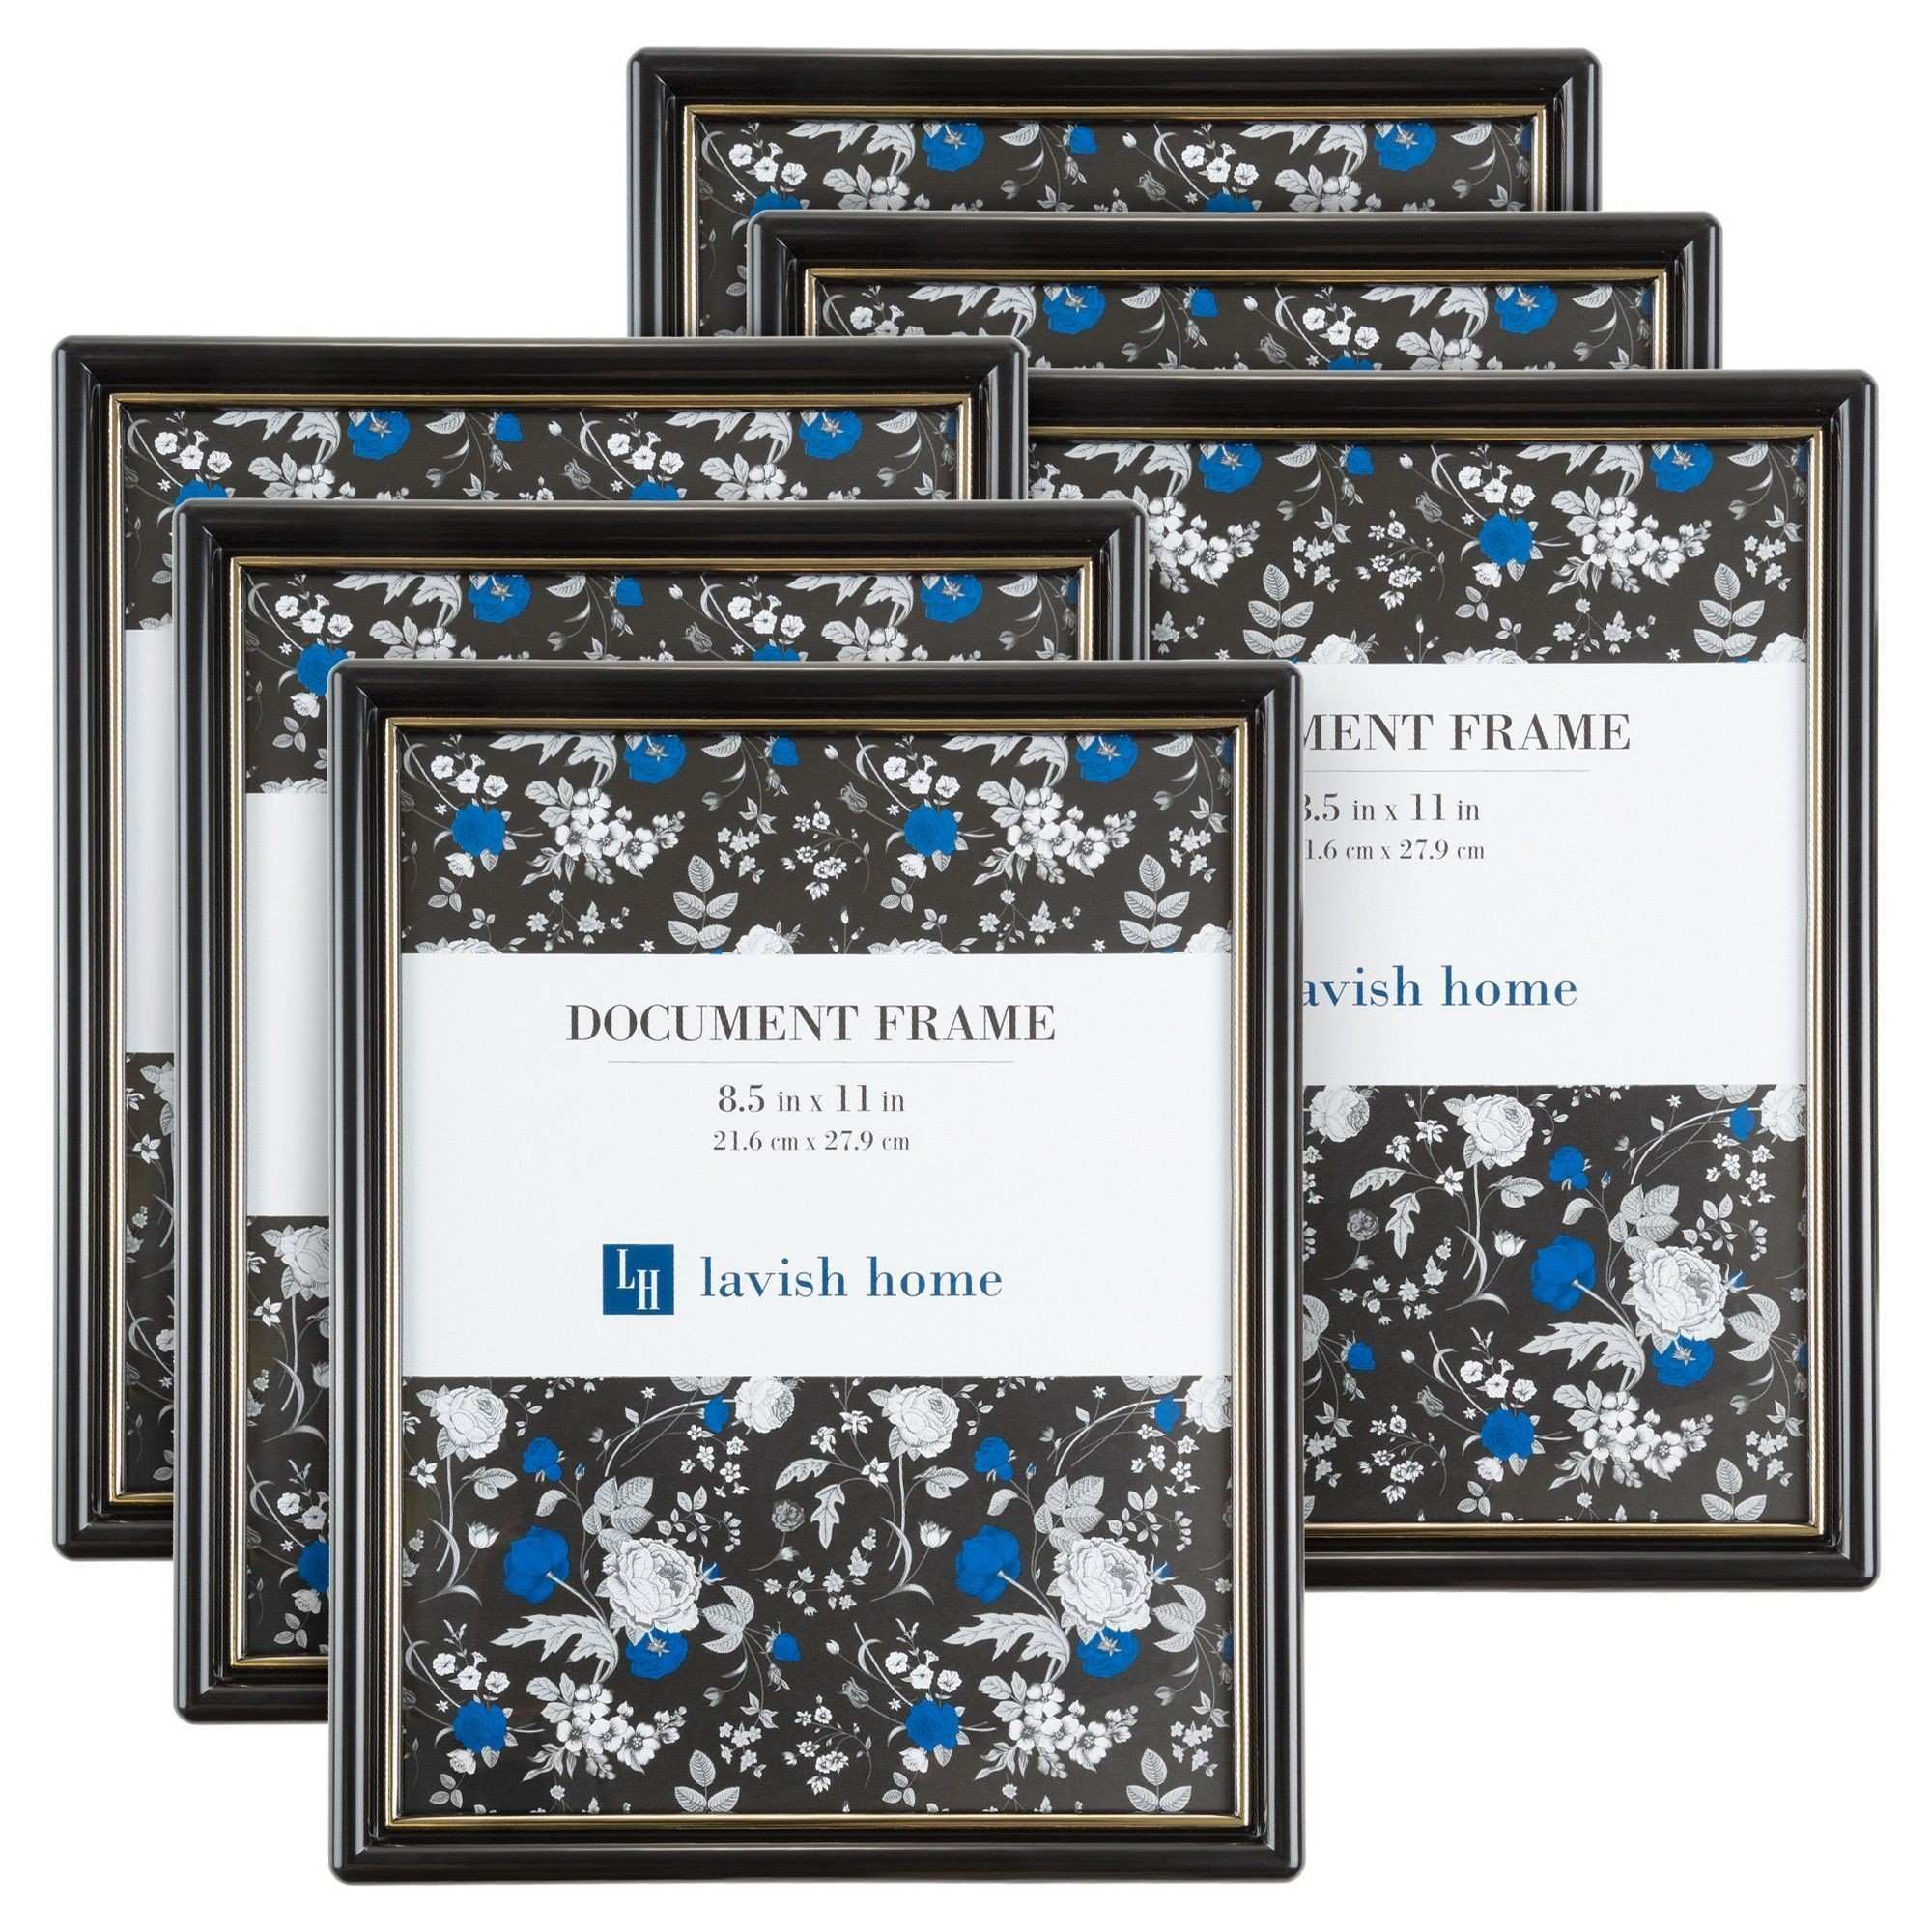 8 5x11 Document Frames Pack For Picture Gallery Wall With Stand and